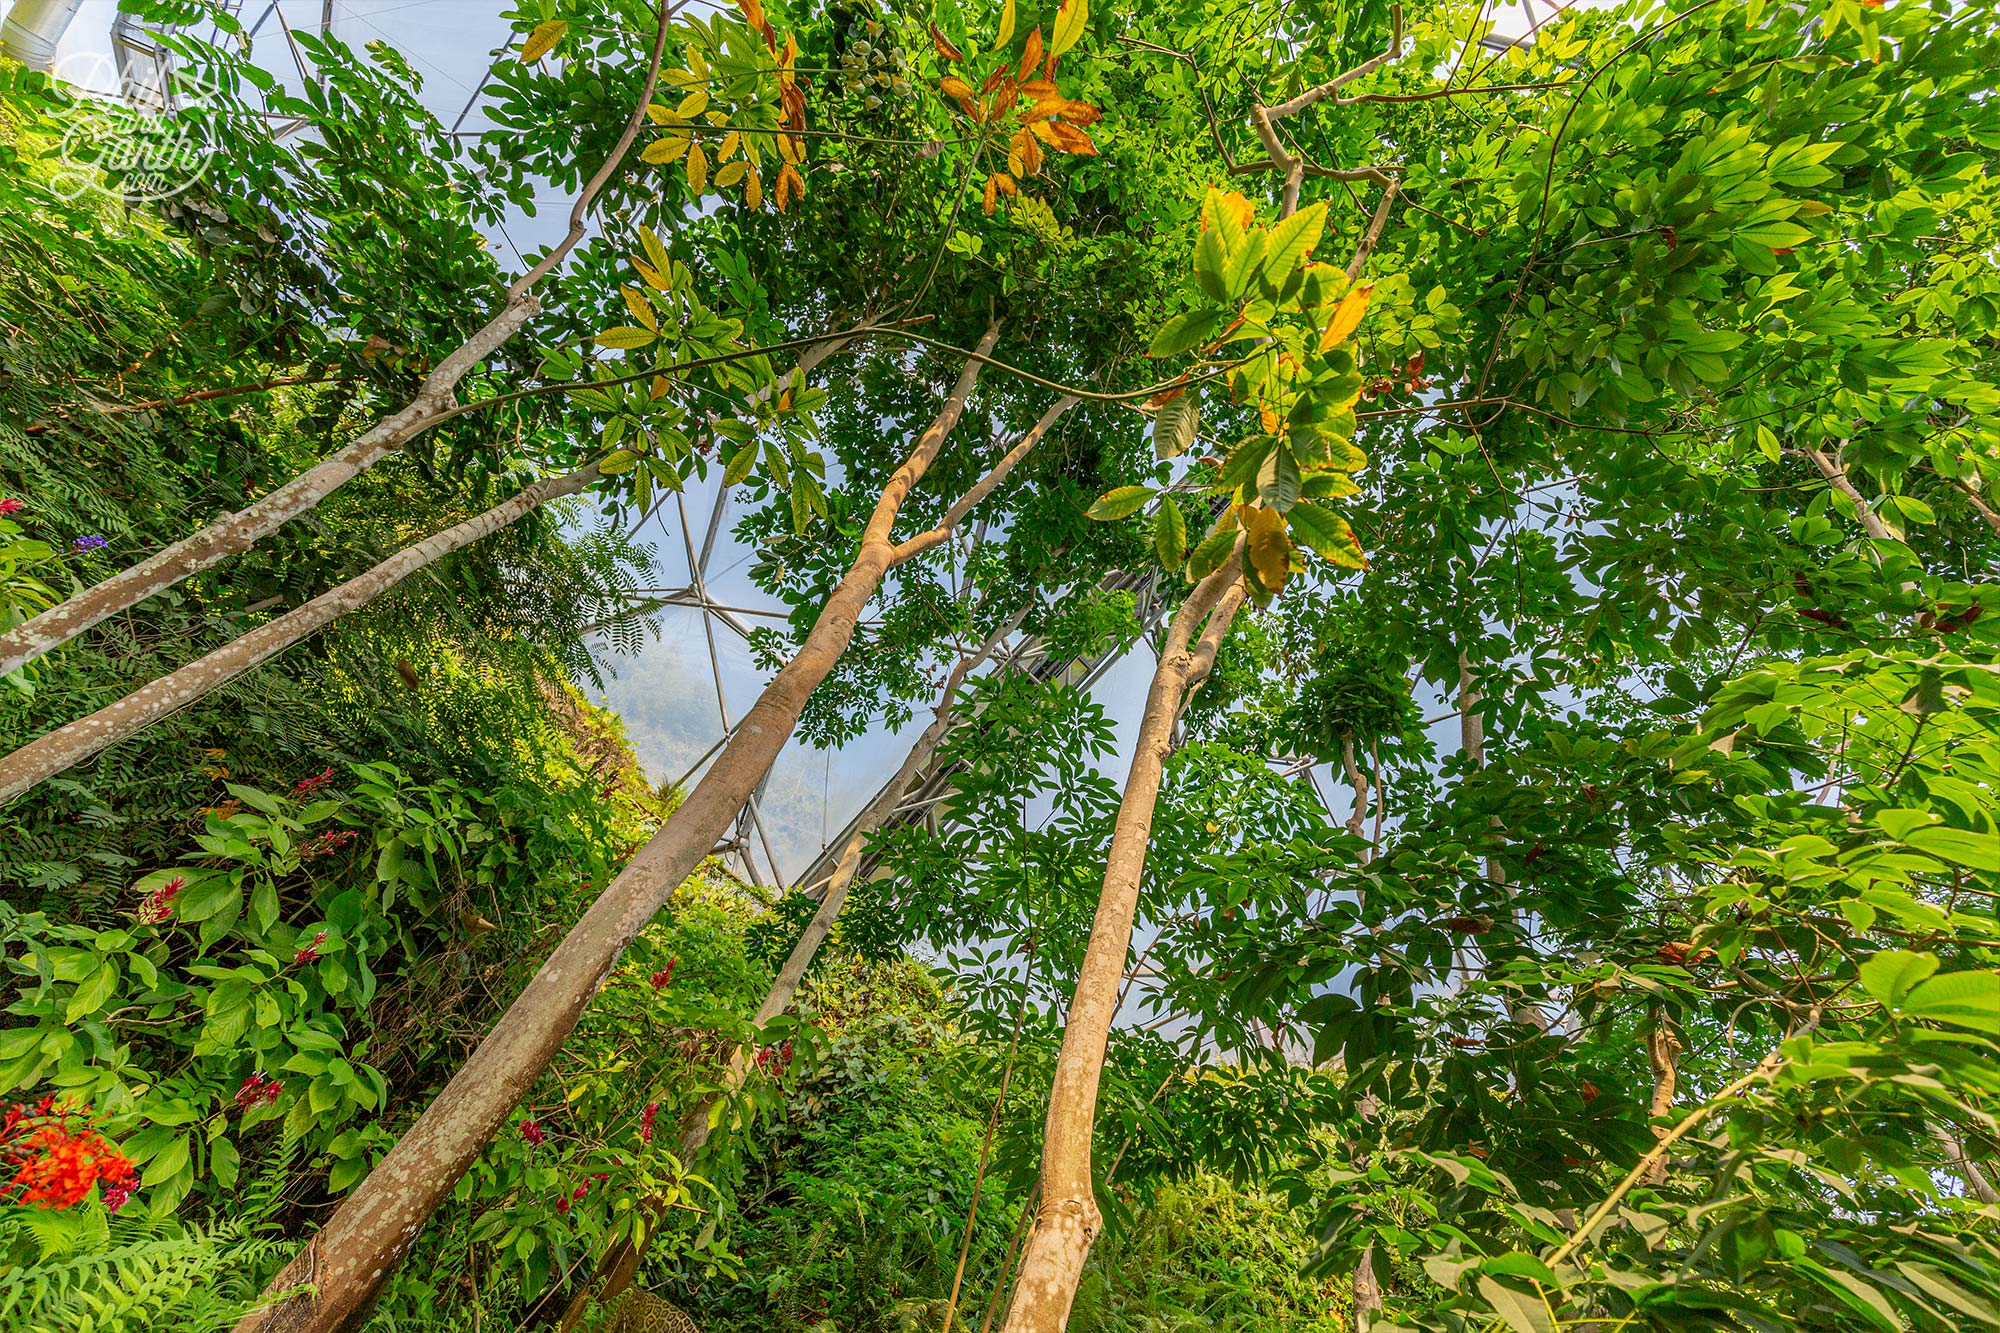 A grove of rubber trees